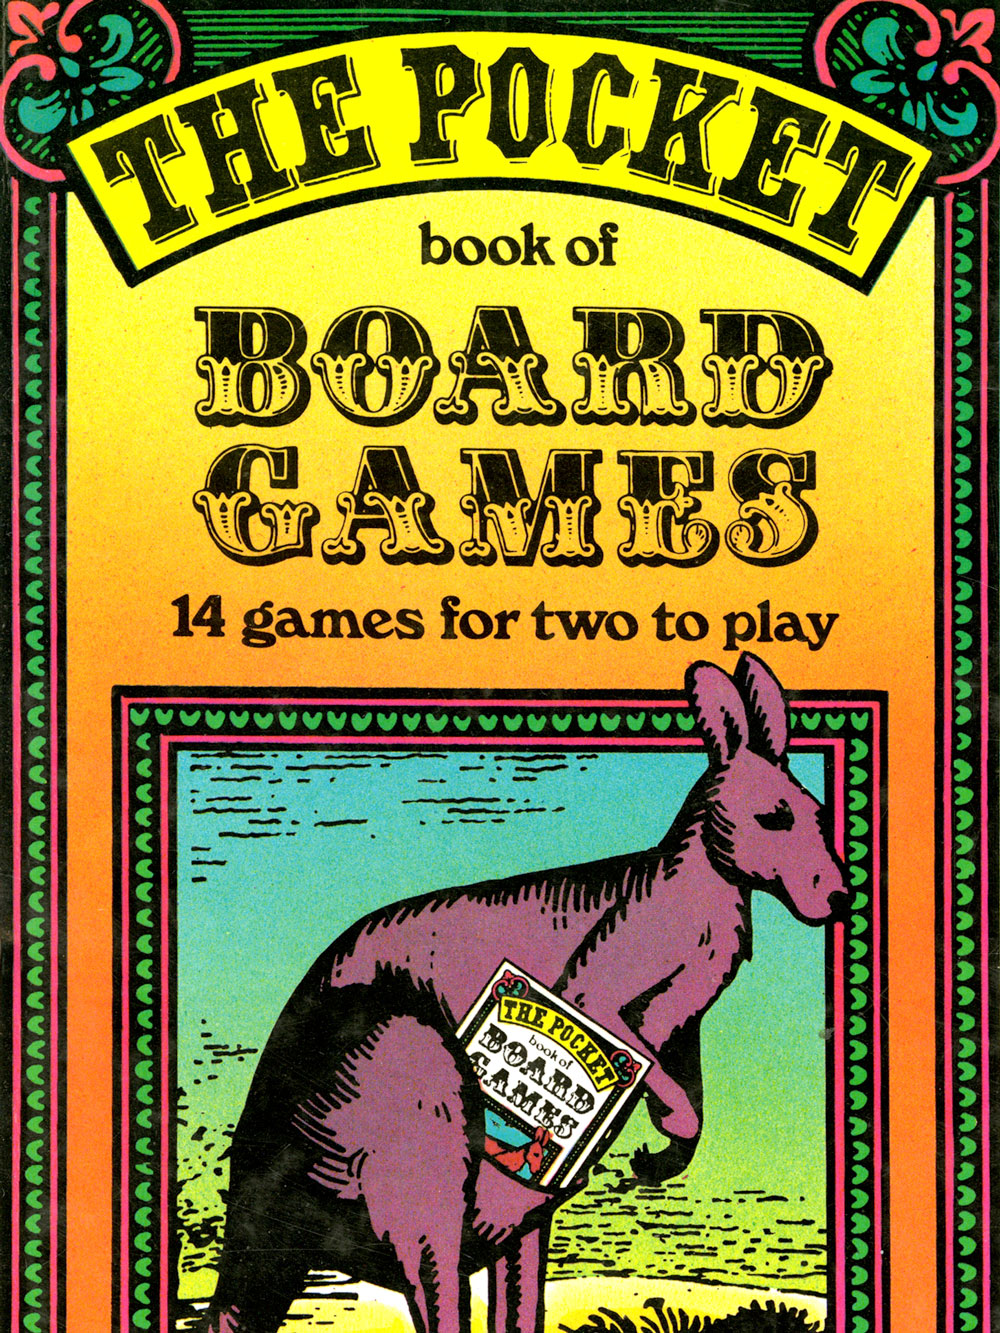 THE POCKET BOOK OF BOARD GAMES